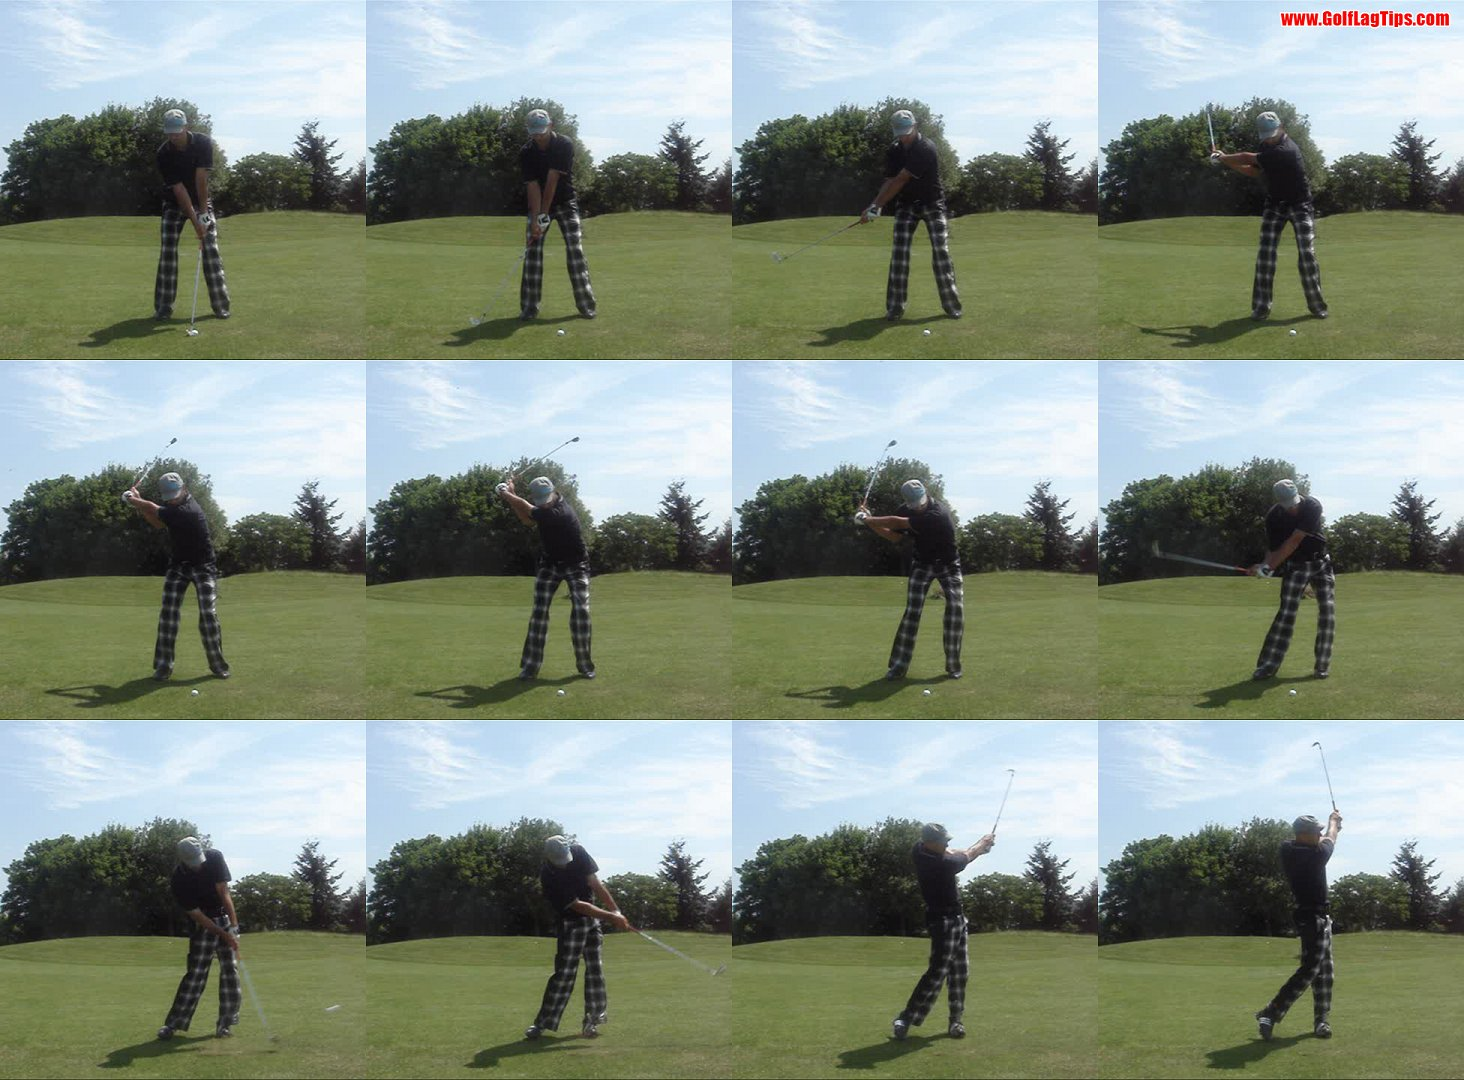 40 352 Gifs Found For Slow Motion Golf Swing